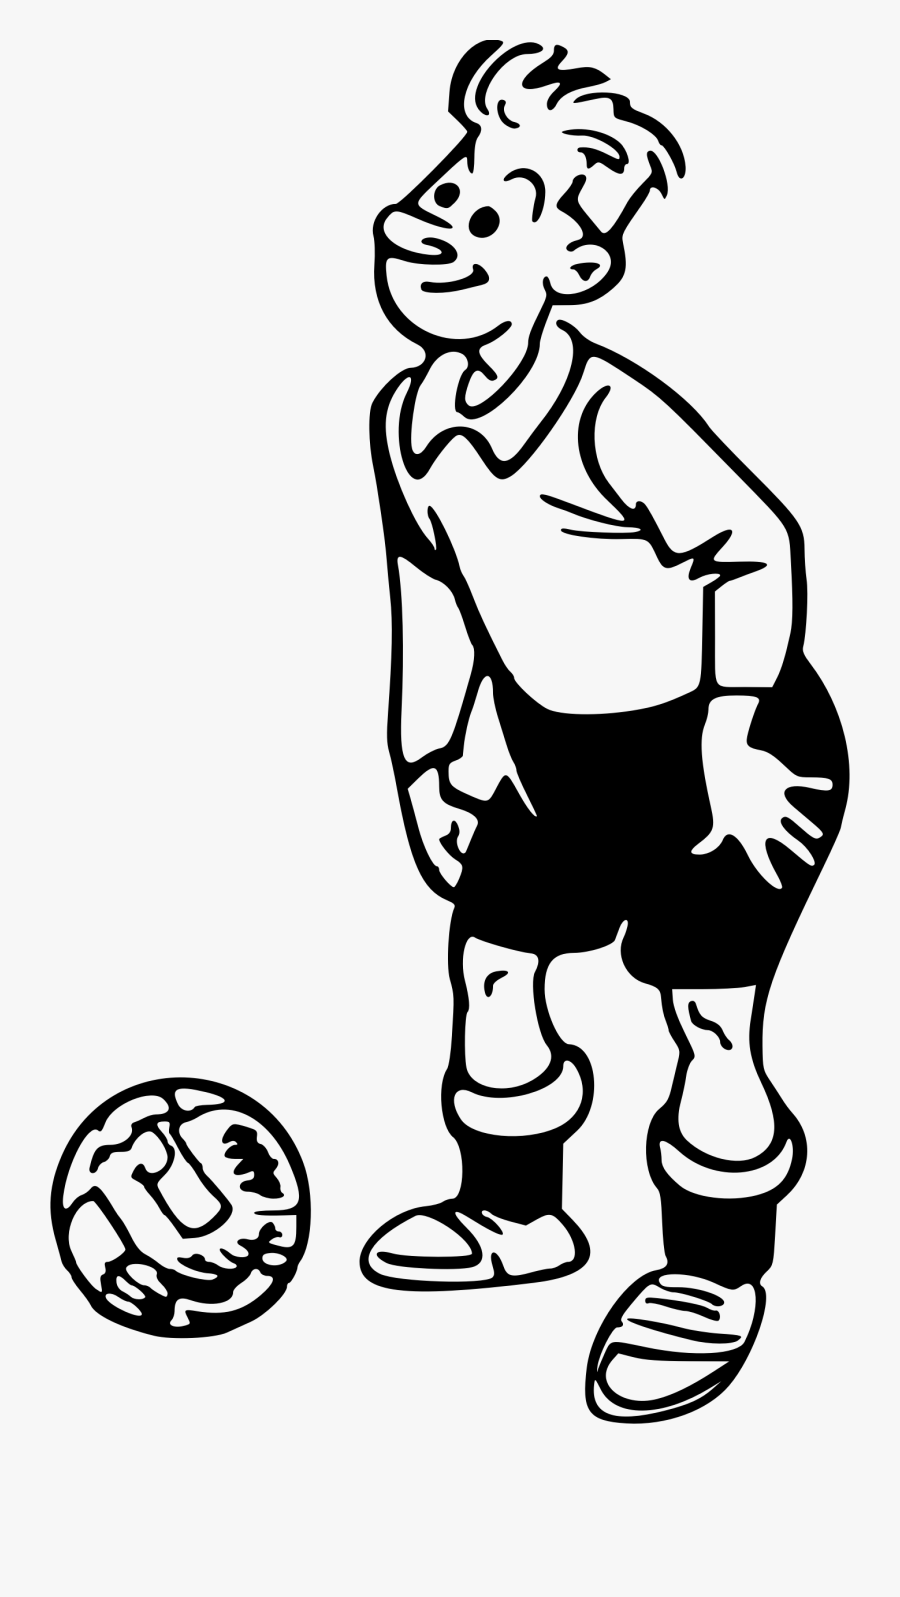 Clip Art Image - Drawings Of Sports Player, Transparent Clipart